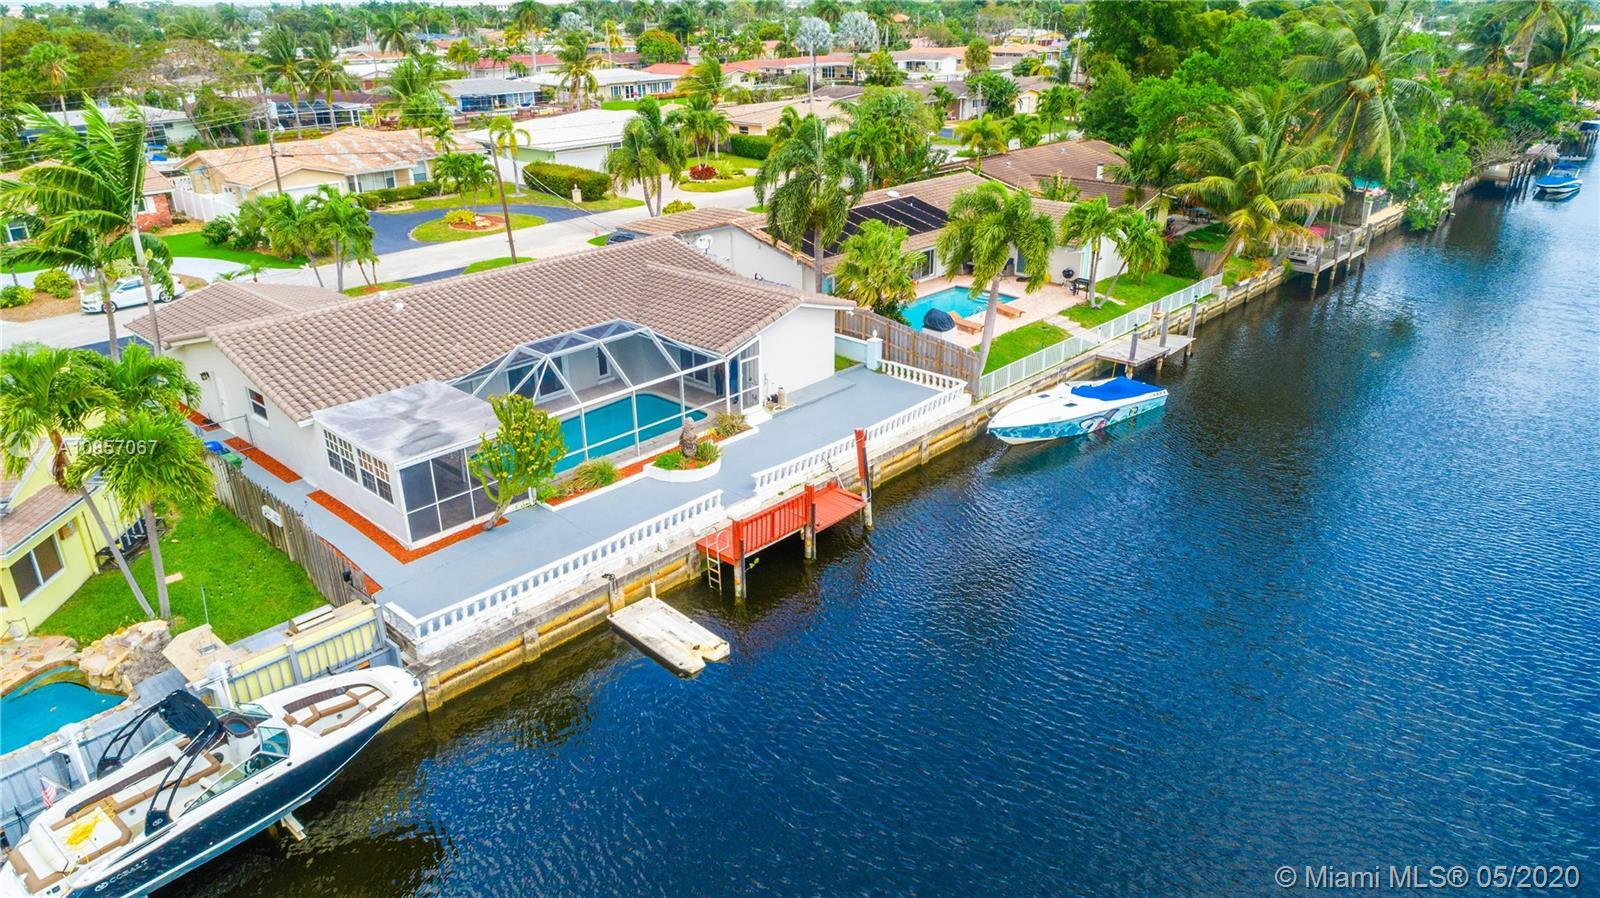 An Exceptional Find! A Perfect Home for those looking for an Outdoor and Waterfront Lifestyle. Enjoy